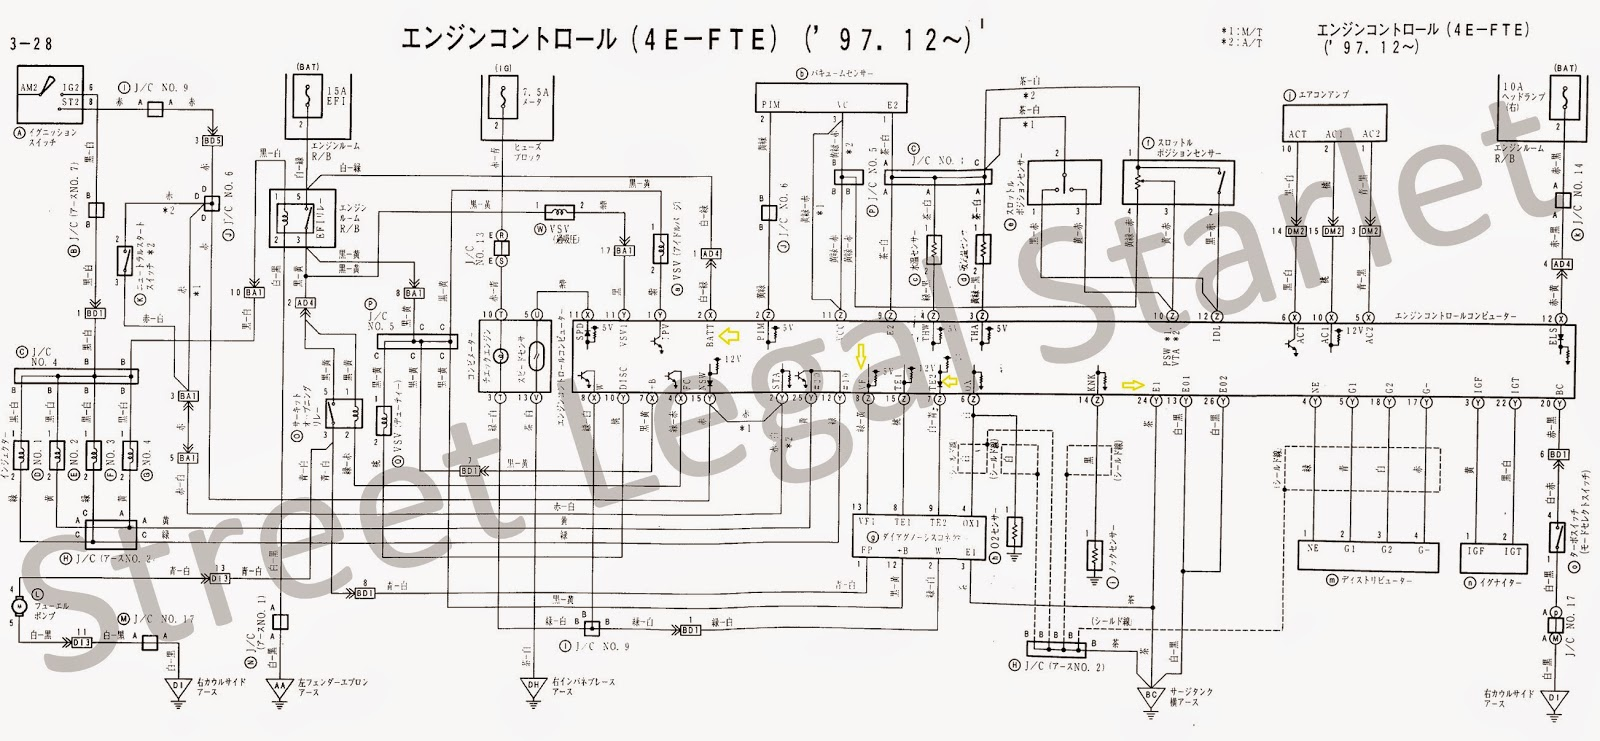 small resolution of 1982 toyota starlet wiring diagram 2006 honda accord wiring diagram